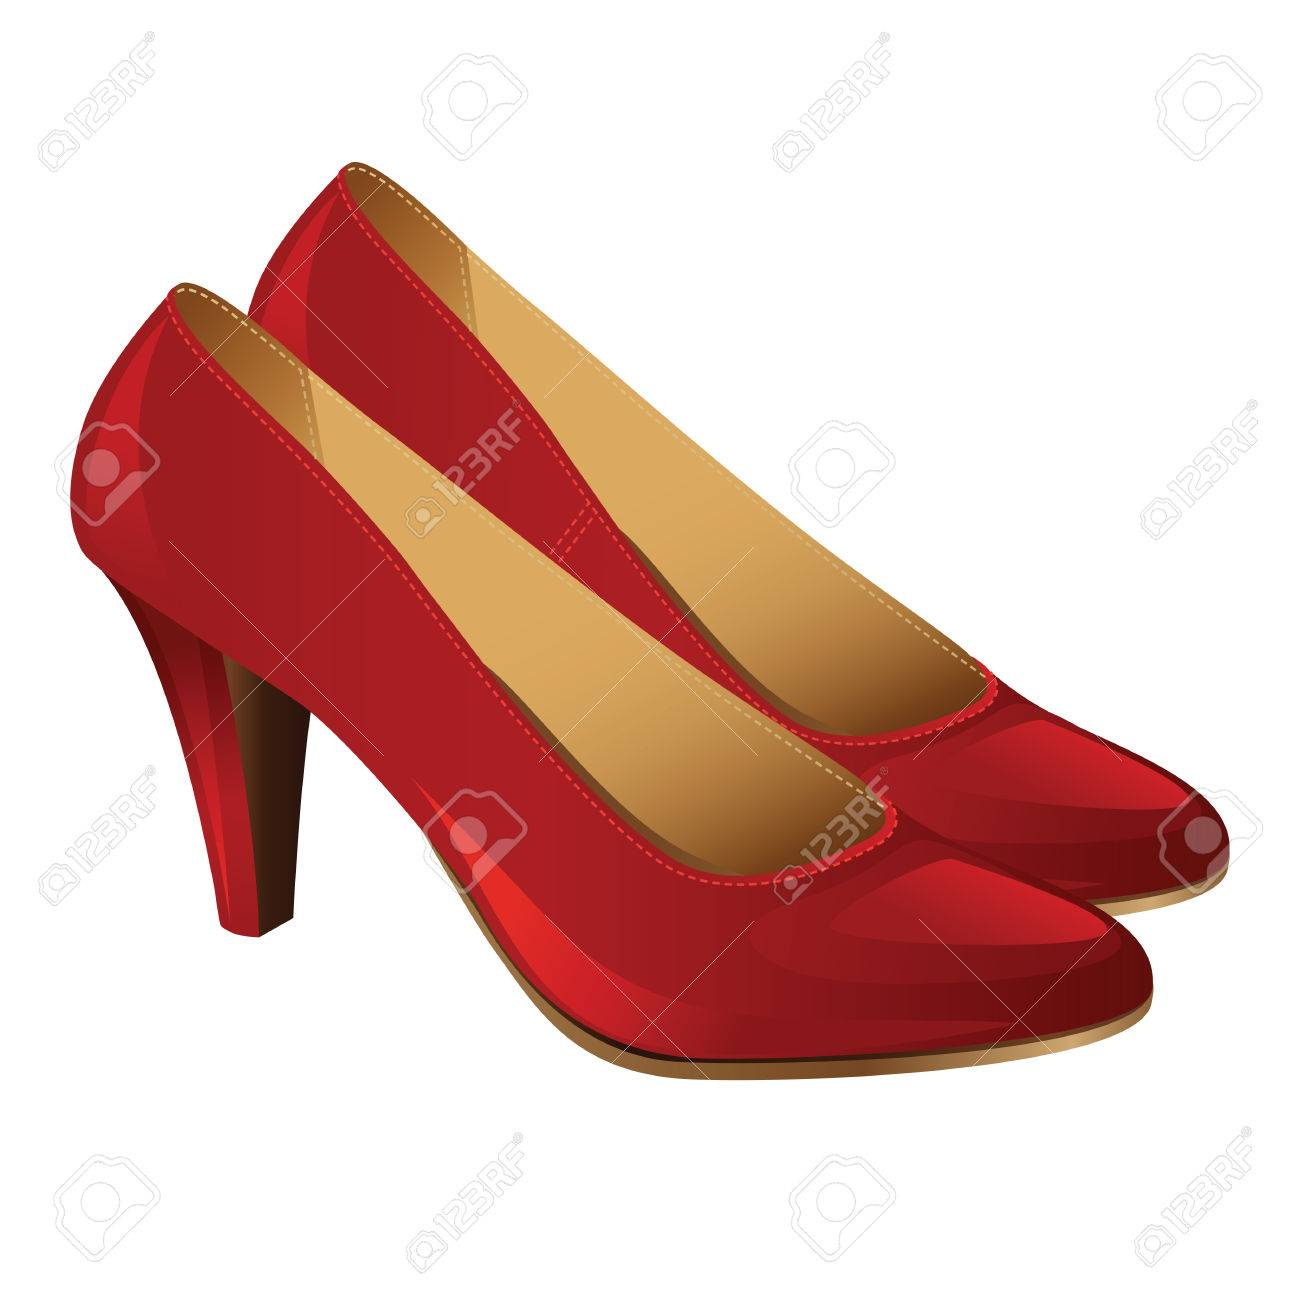 3503ae9a892 Classic woman shoes. Red court shoes isolated on white background